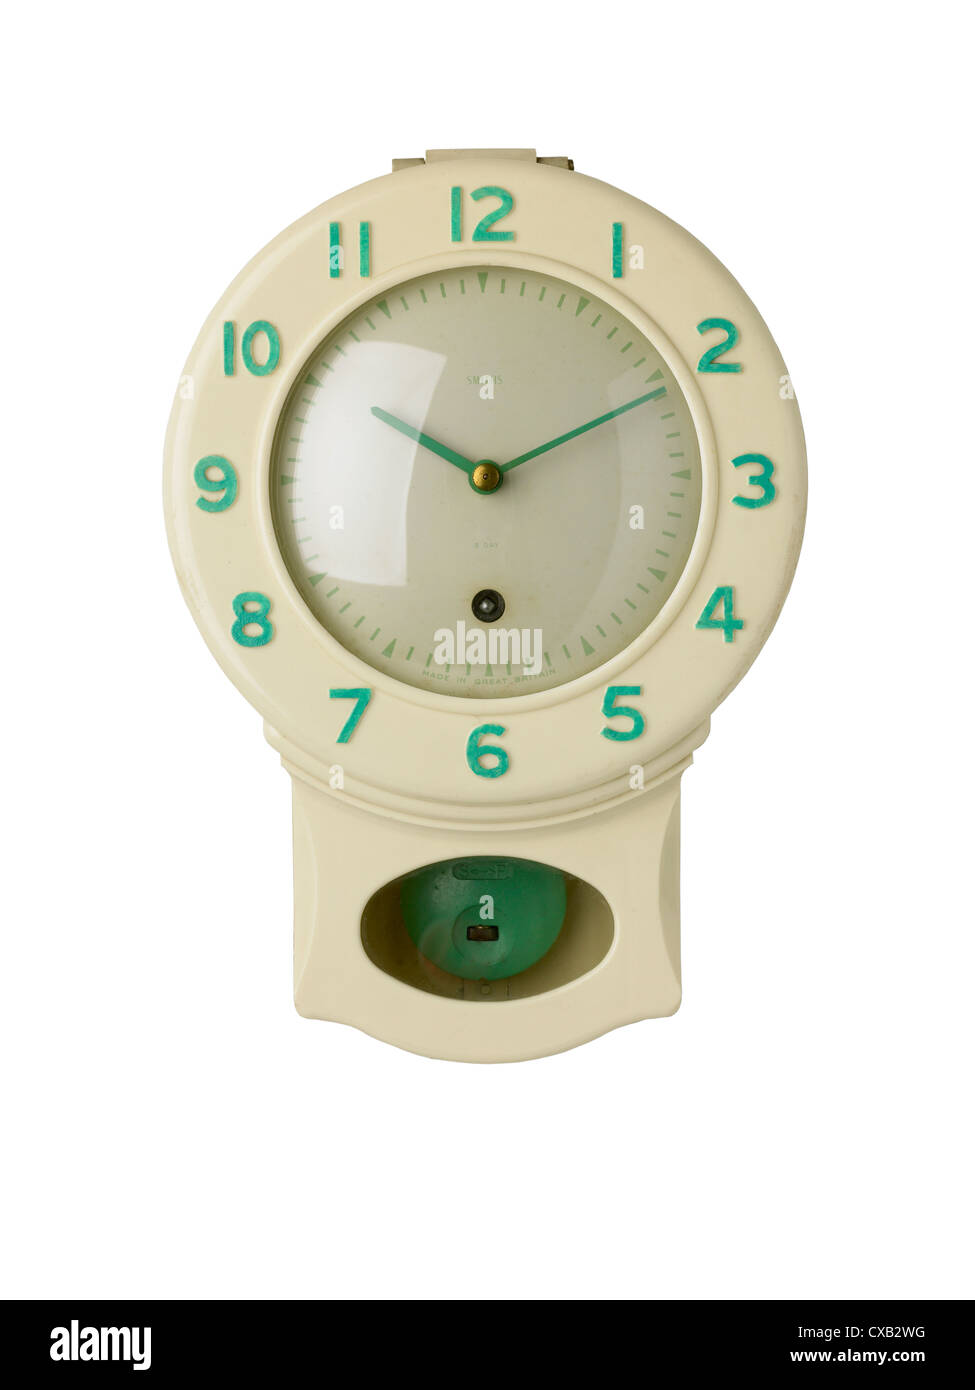 Vintage Kitchen Clock   Stock Image